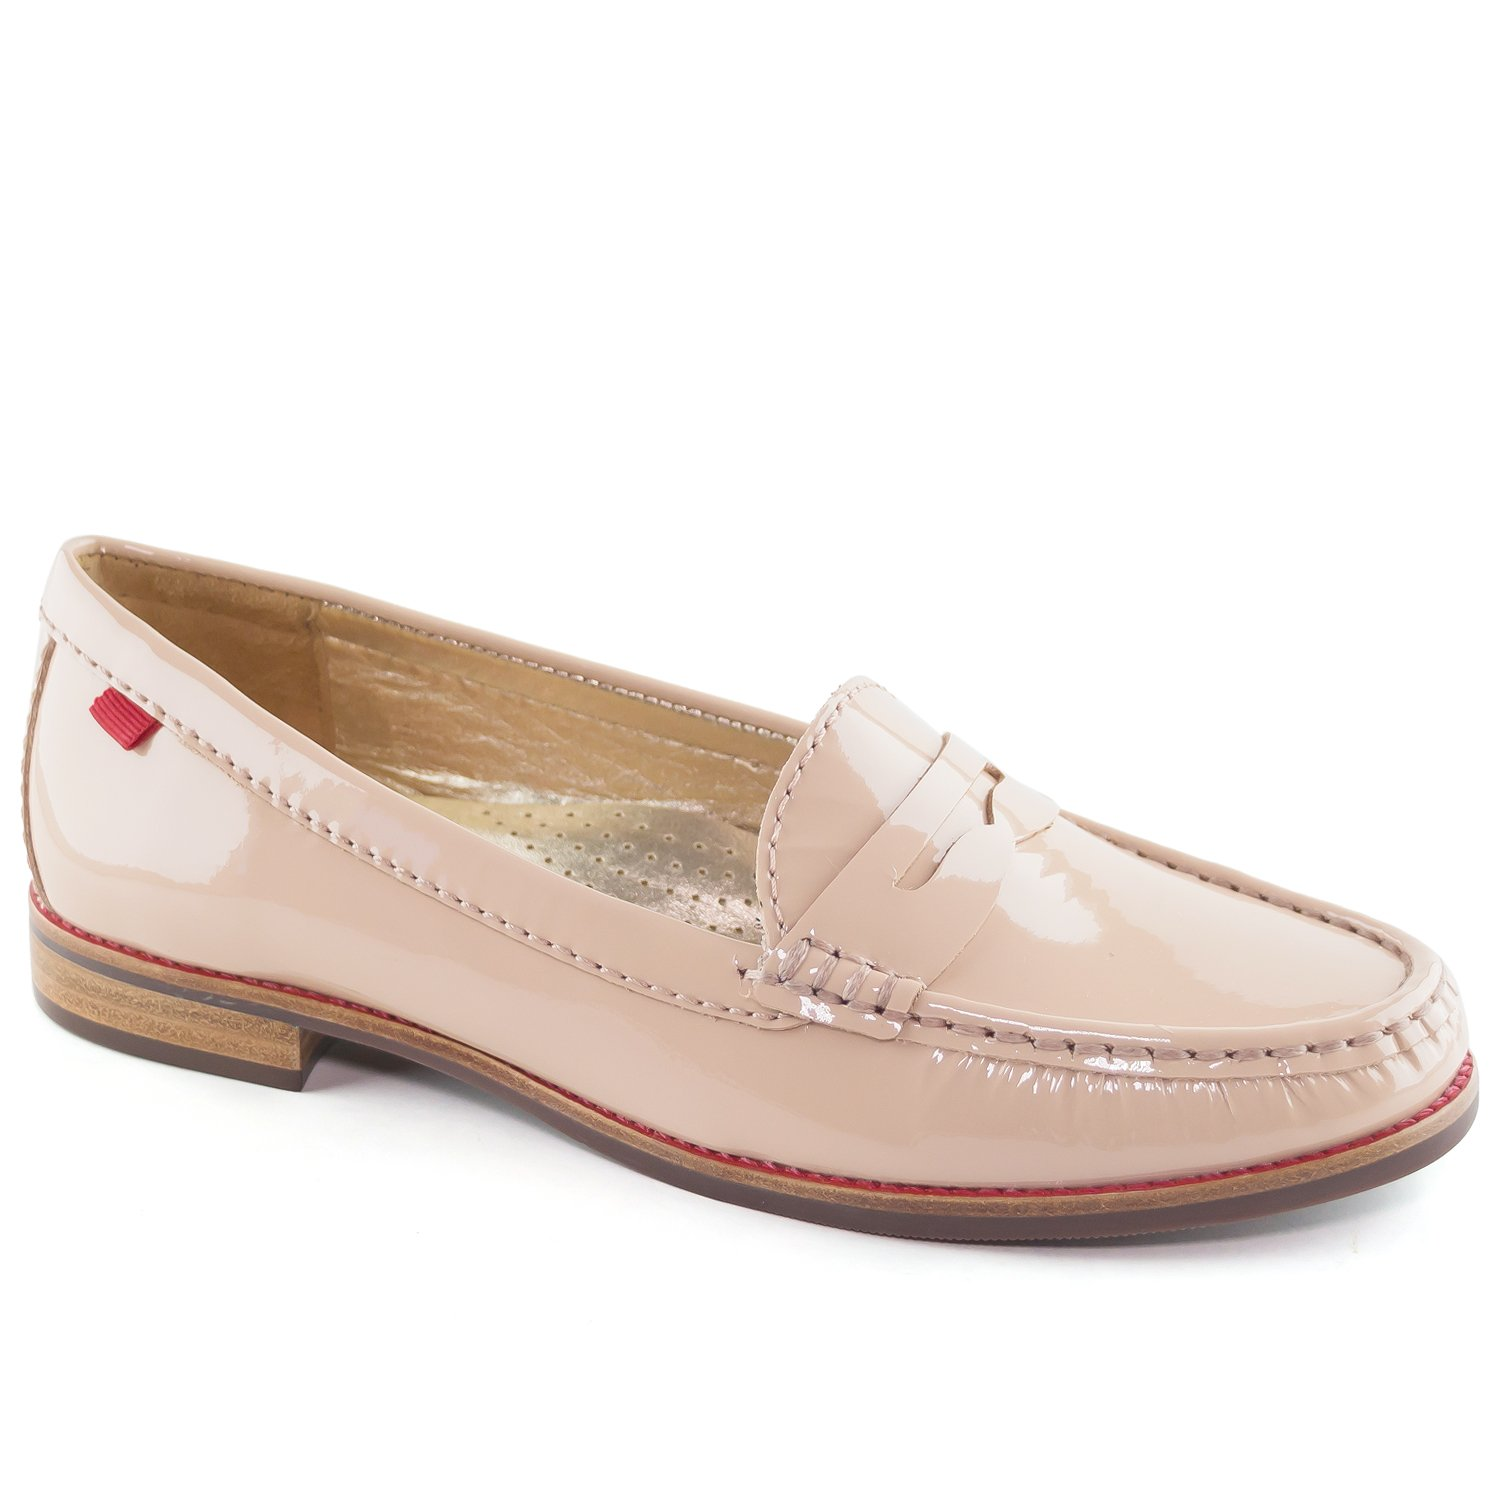 Marc Joseph New York Women's East Village Nude Patent Penny Loafer 8.5